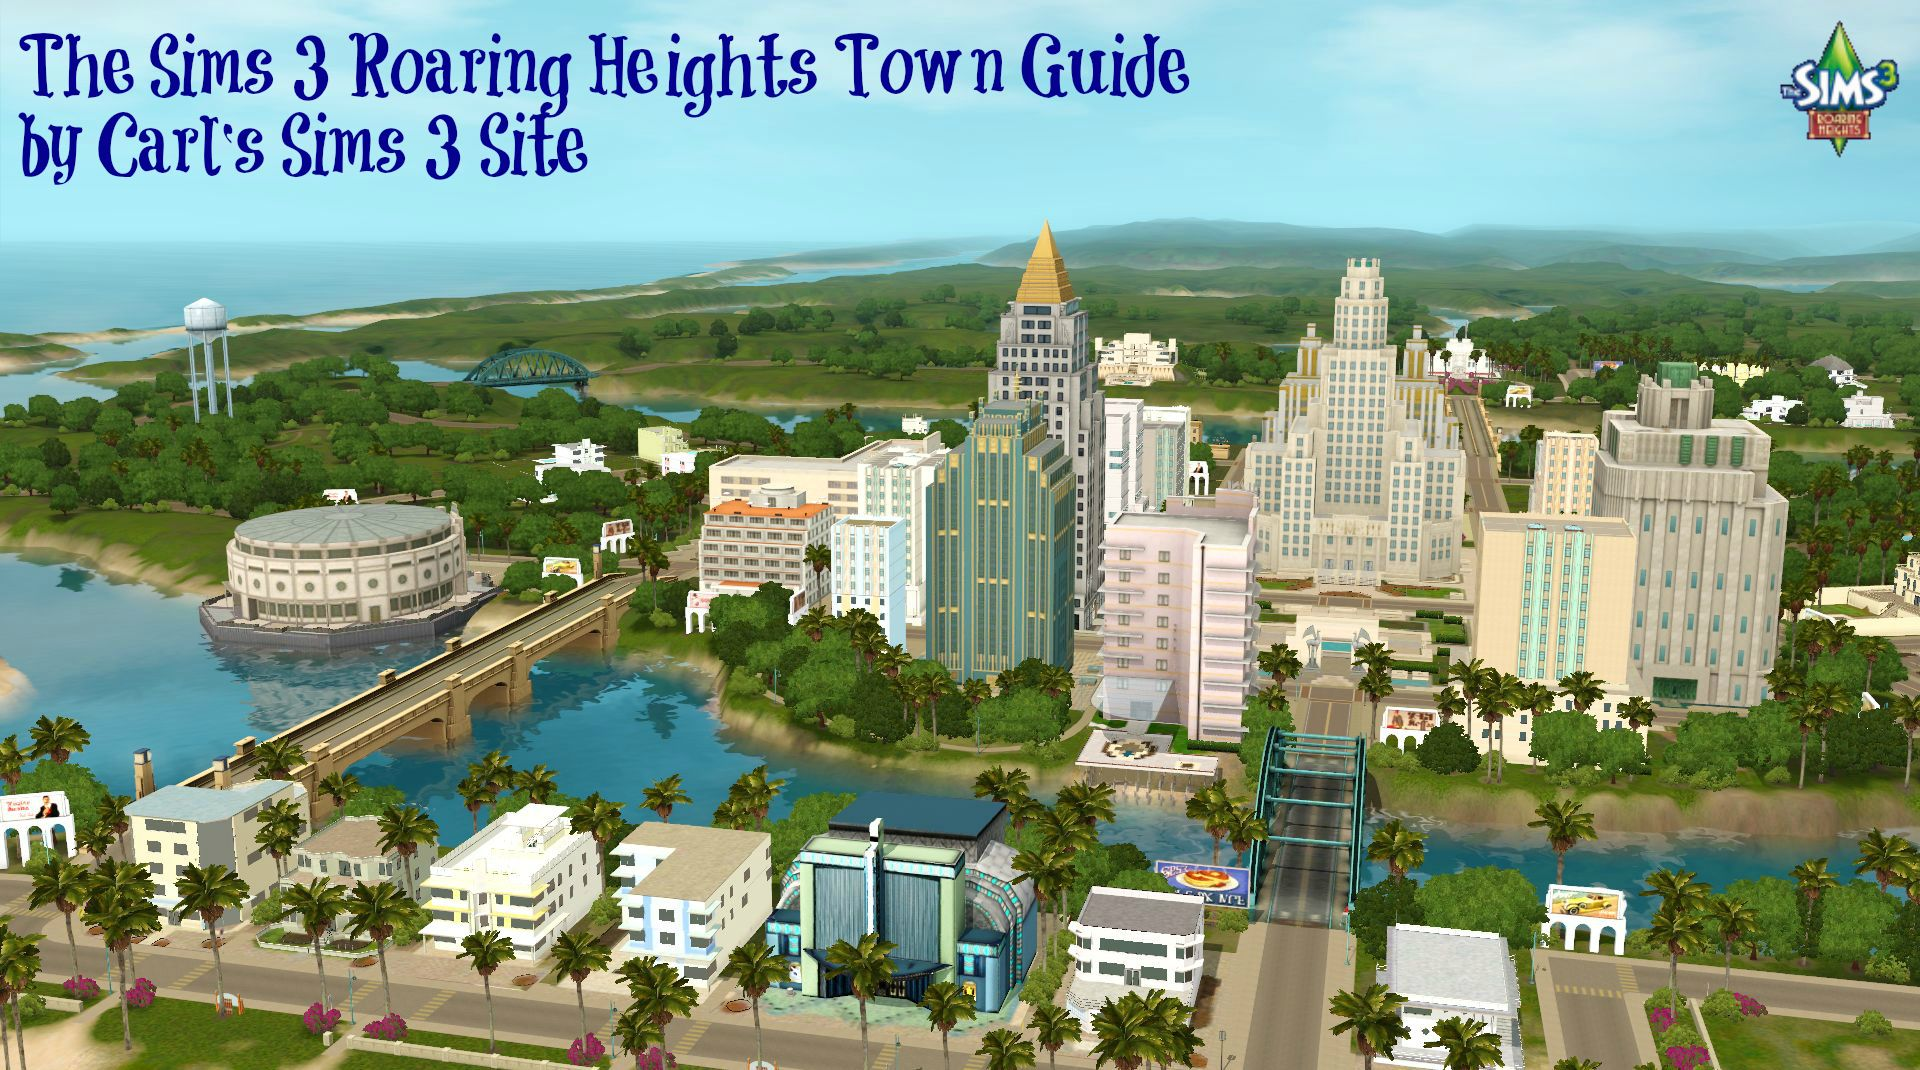 The Sims 3 Roaring Heights World: A picture of the town ...